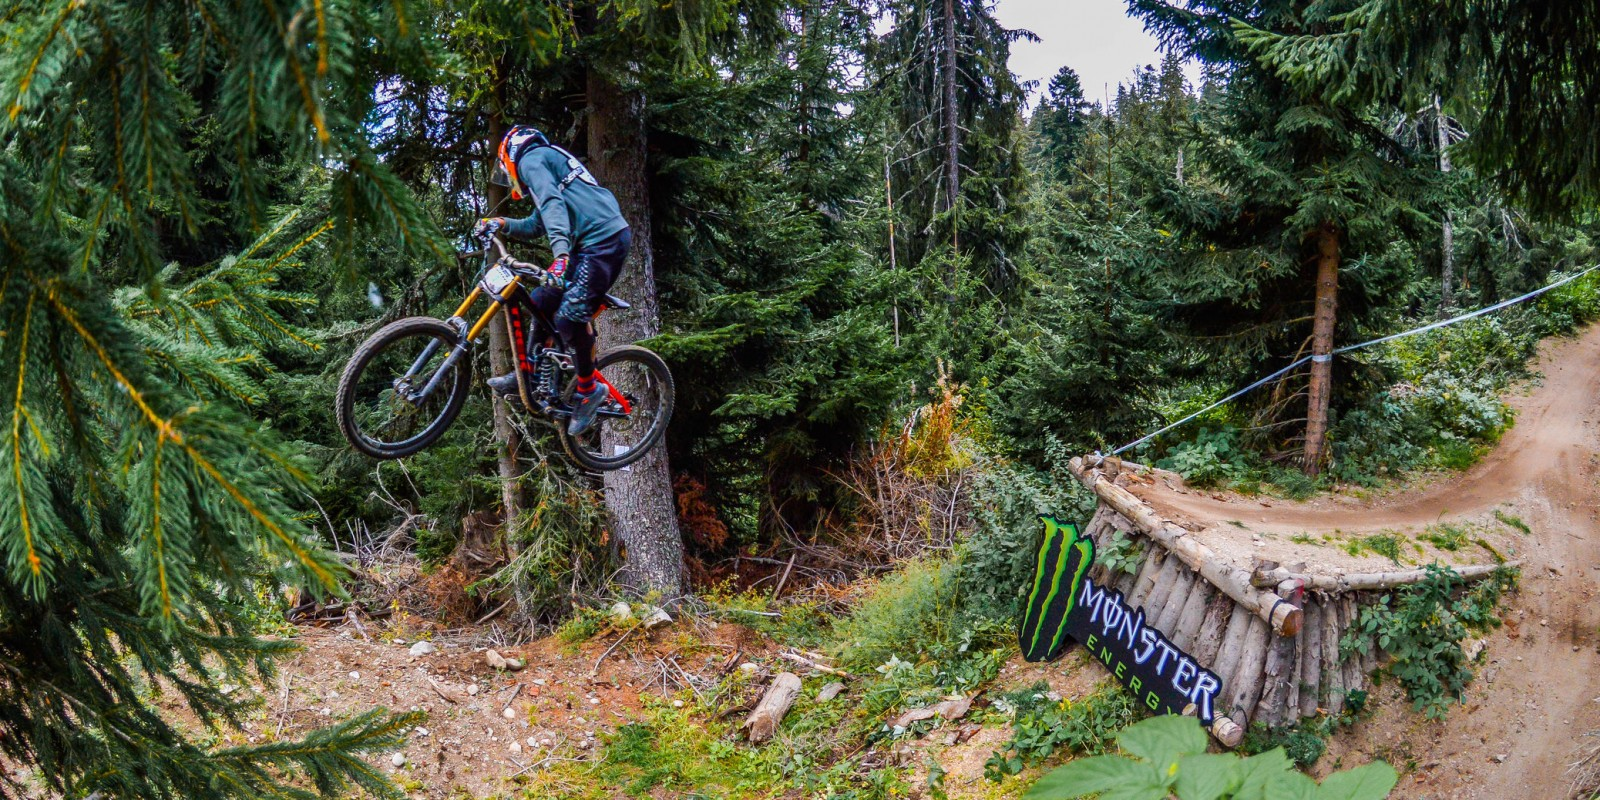 Borovets Open Cup was a UCI class 1 MTB event sponsored by ME. Boris Zahariev